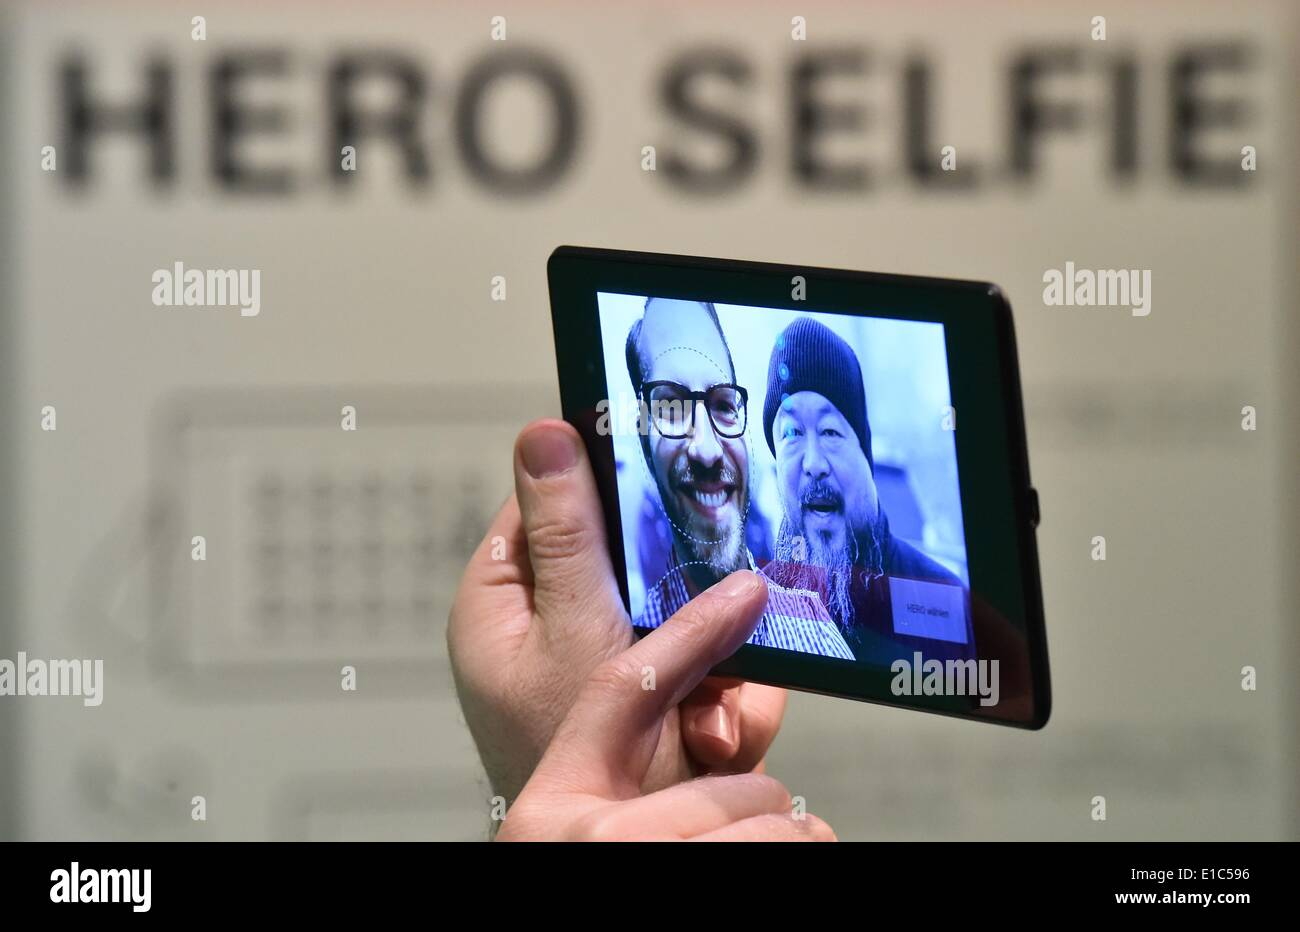 Neuhardenberg, Germany. 30th May, 2014. The co-creator of the exhibition Boris Hars-Tschachotin is pictured in the installation 'Hero Selfie' on the screen of a tablet next to the picture of the artist Ai Weiwei View in Neuhardenberg, Germany, 30 May 2014. The exhibition 'Remebering the heros - 200 years Neuhardenberg' (lit.) opens on 01 June 2014. Photo: Patrick Pleul/dpa/Alamy Live News - Stock Image